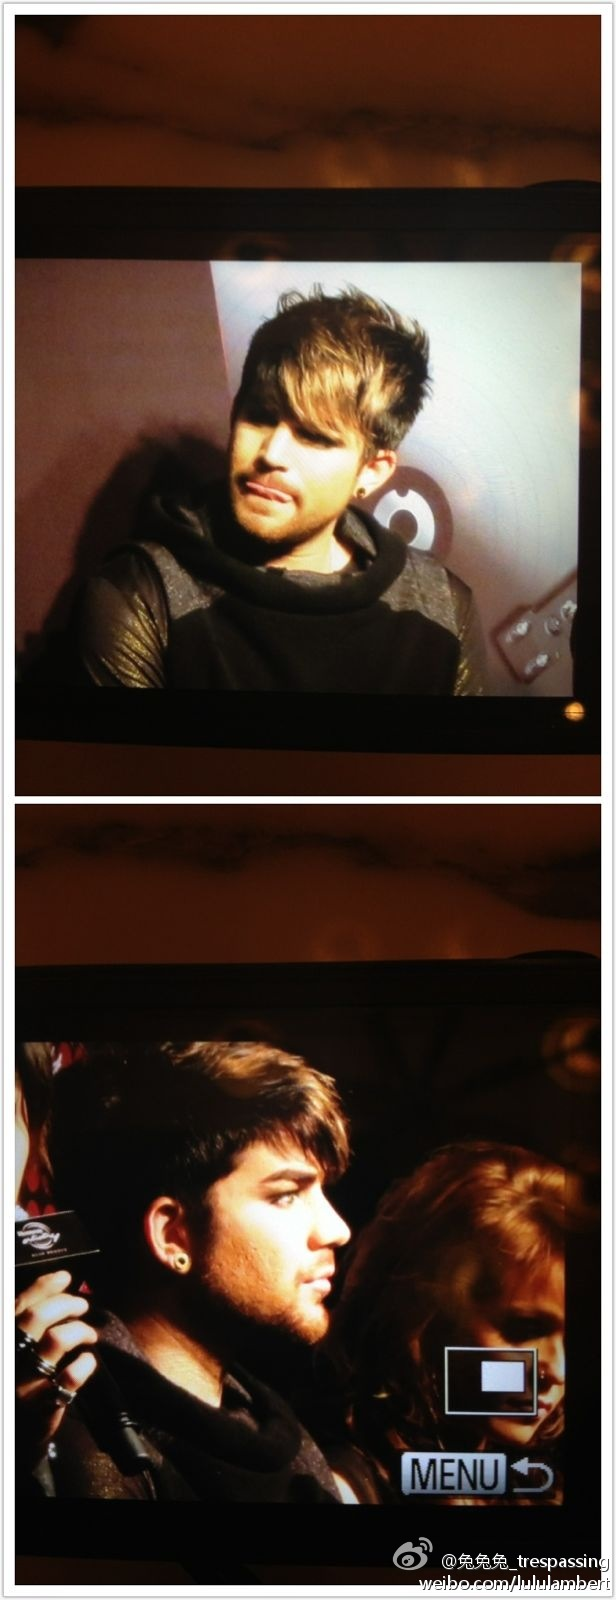 Adam Lambert's press conference for Hennessy event in Shanghai. 01.12.12 716e9303jw1dzef6mk1m4j